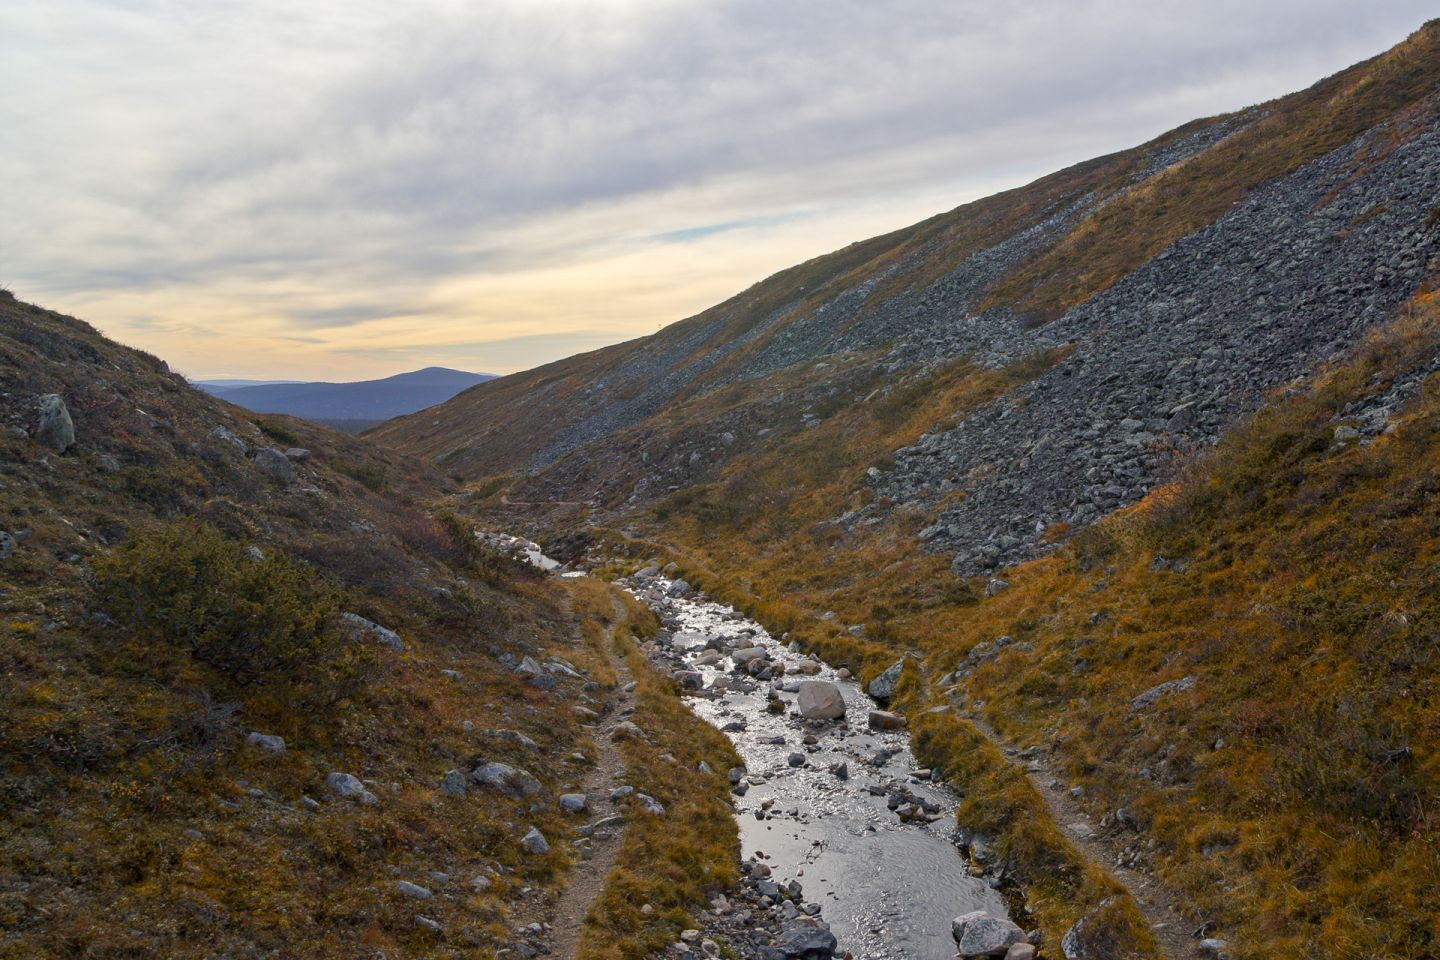 A river canyon in Finnish Lapland